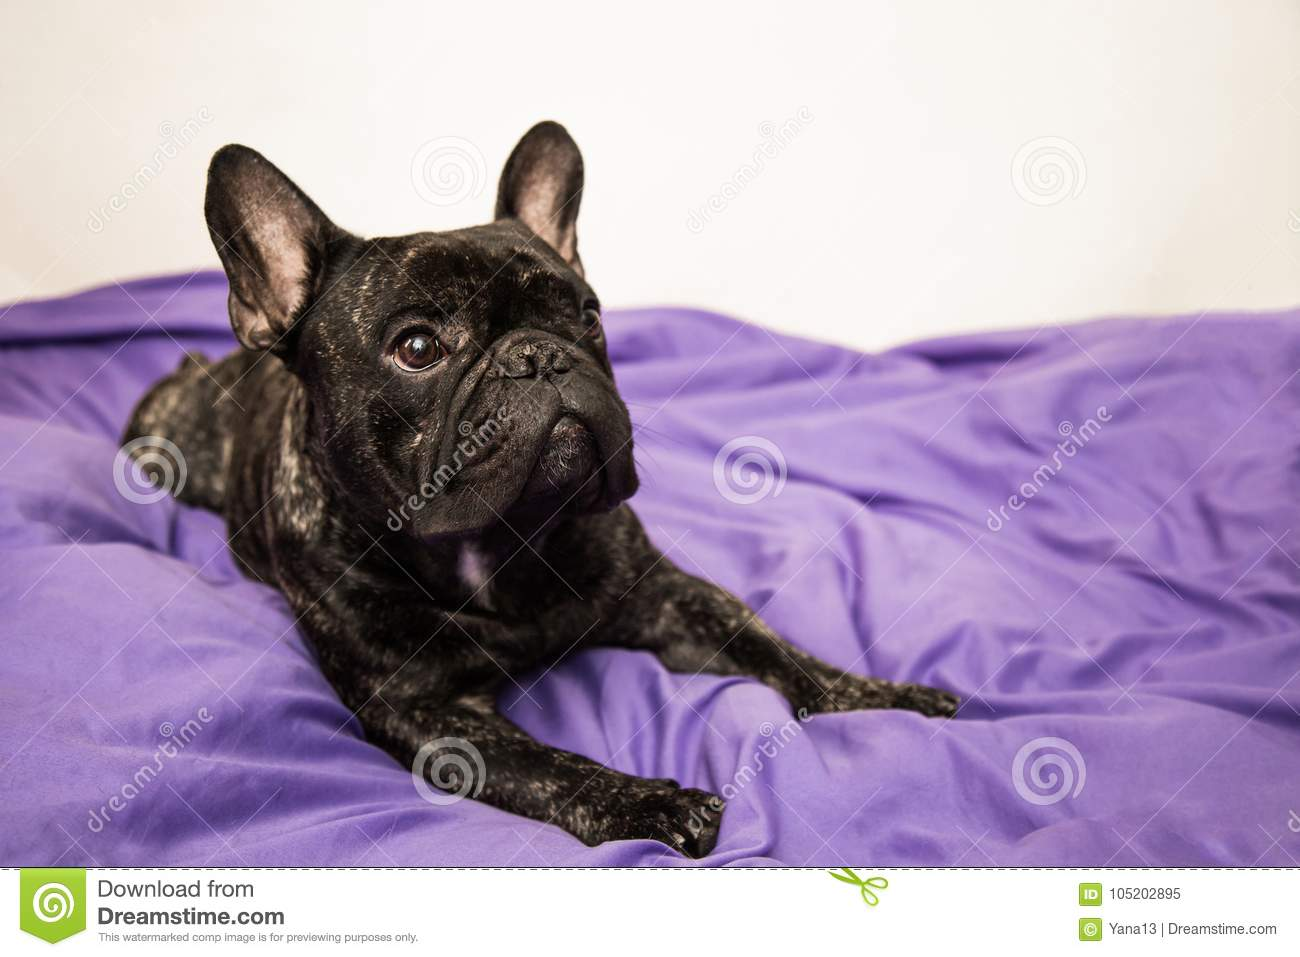 Black Brindle French Bulldog Lying On The Bed Purple Color Closeup